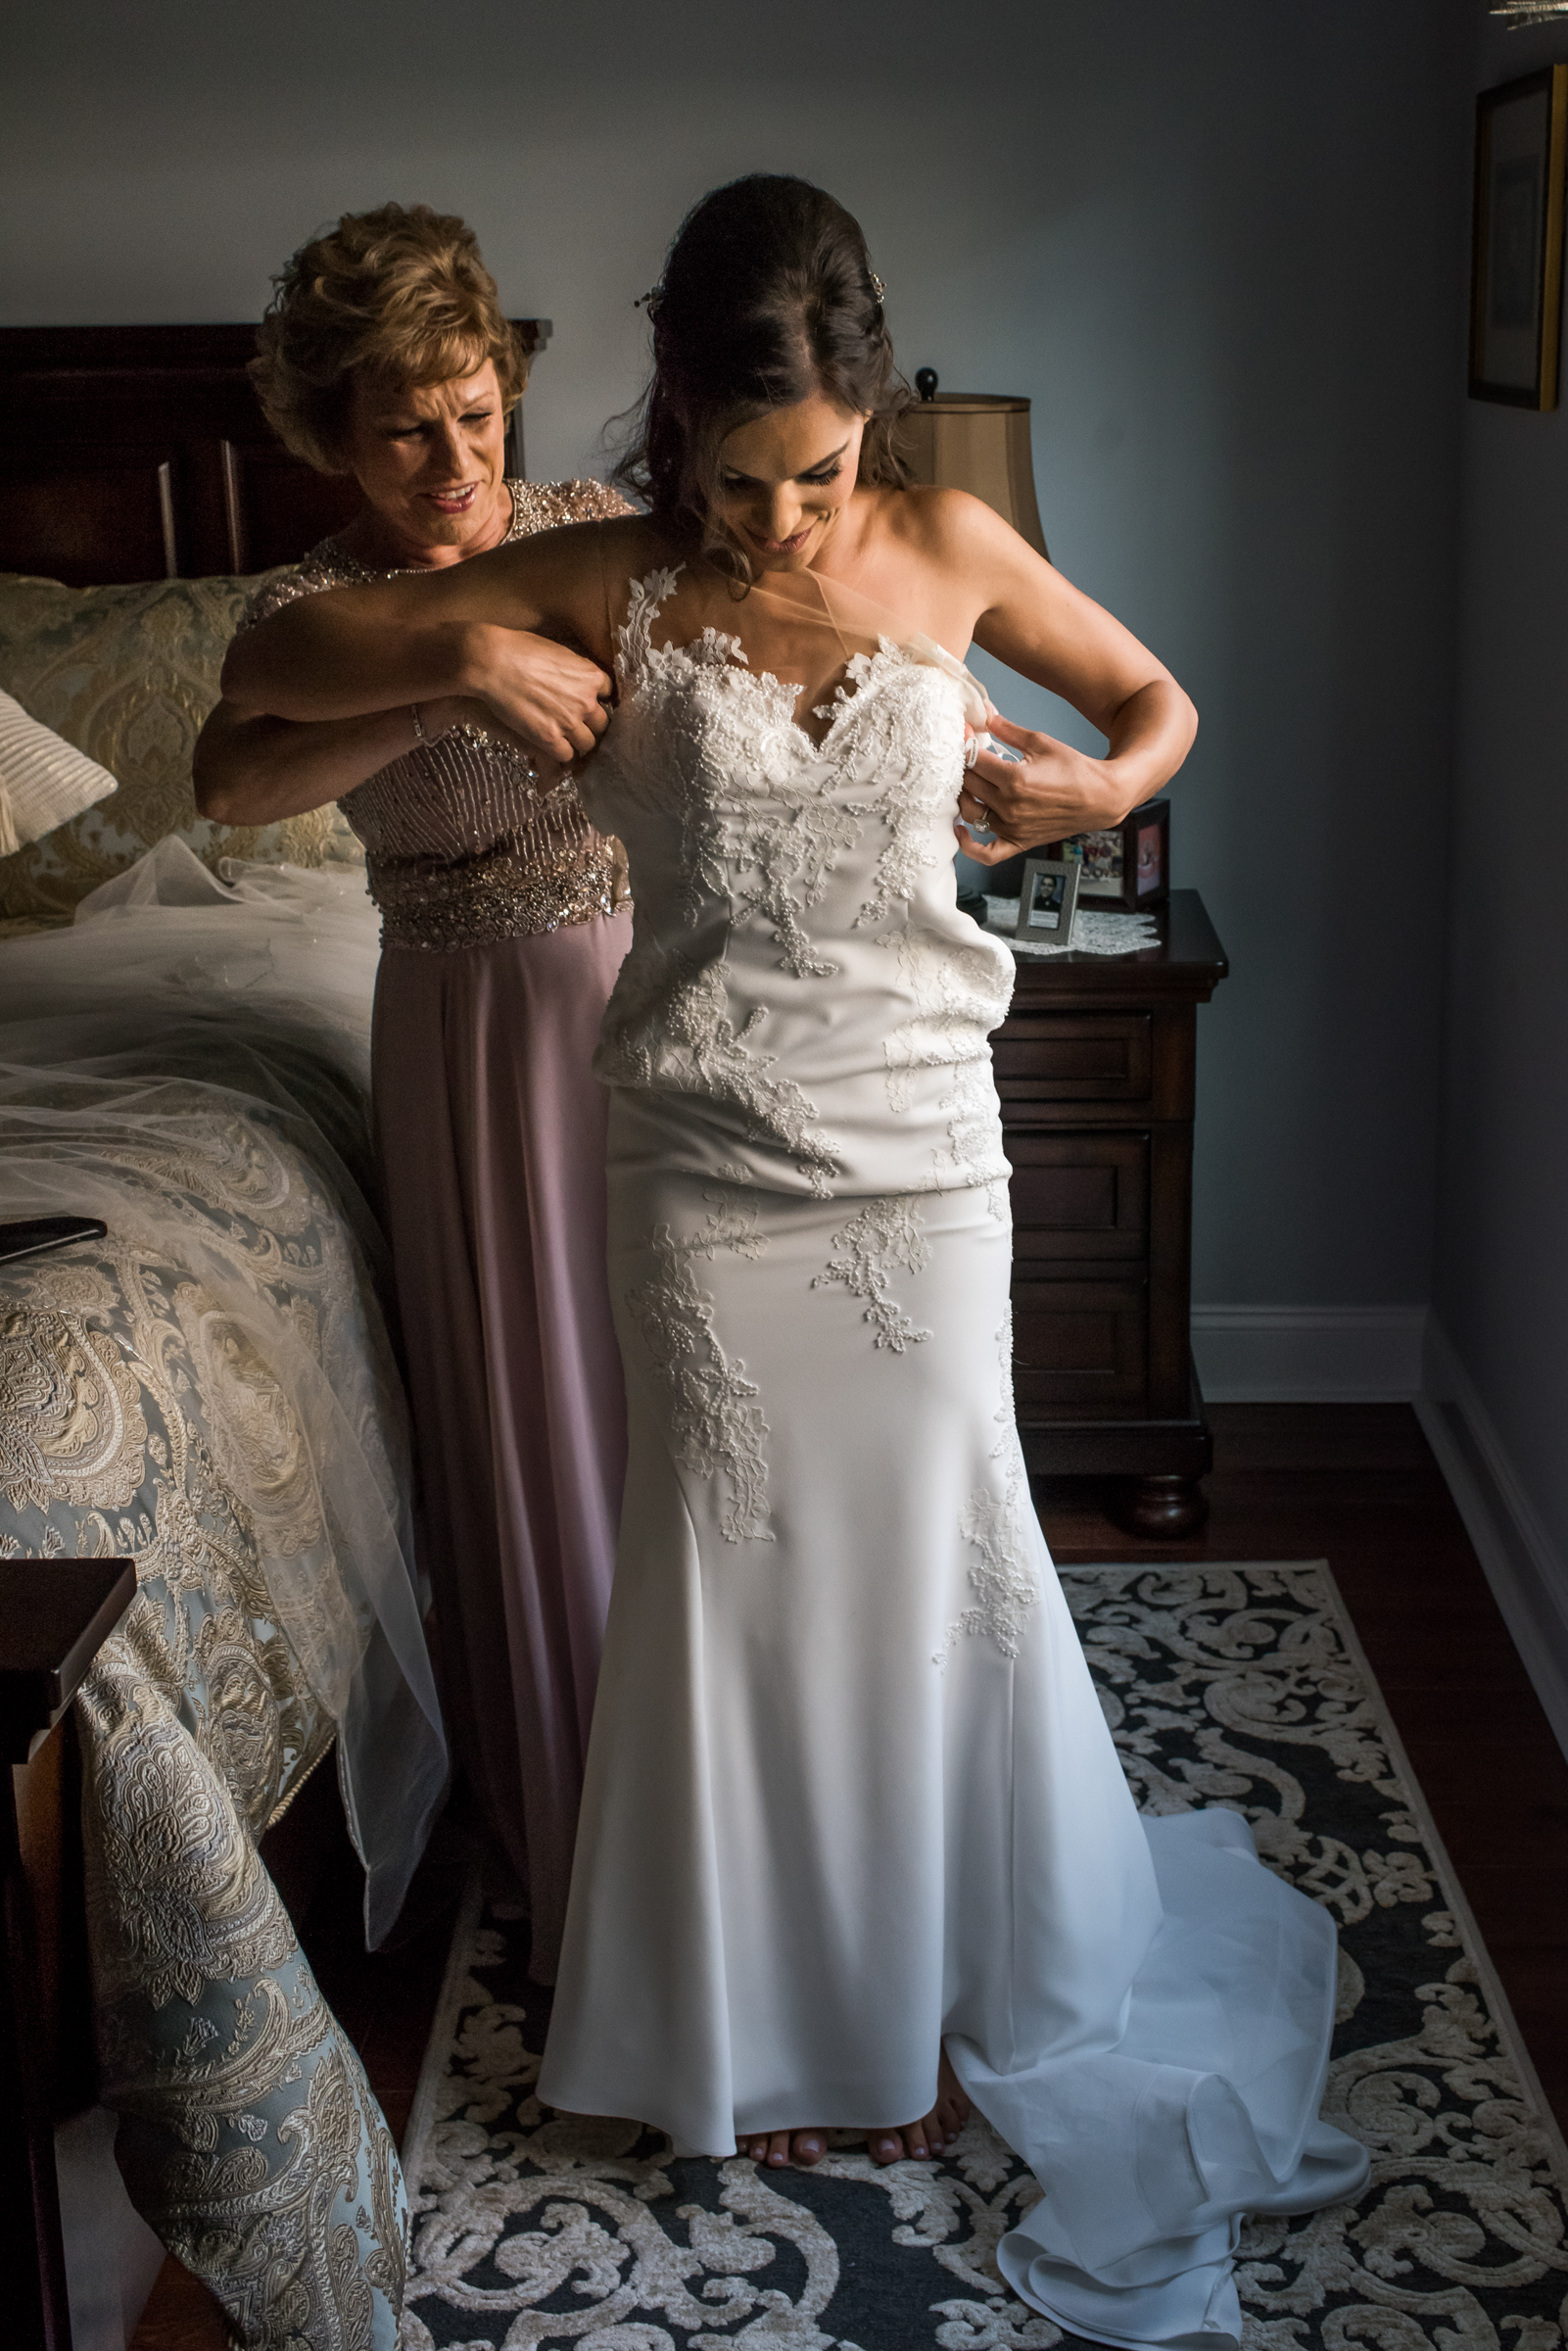 Stefy Hilmer Photography-mom is helping bride into the dress on her wedding day.jpg